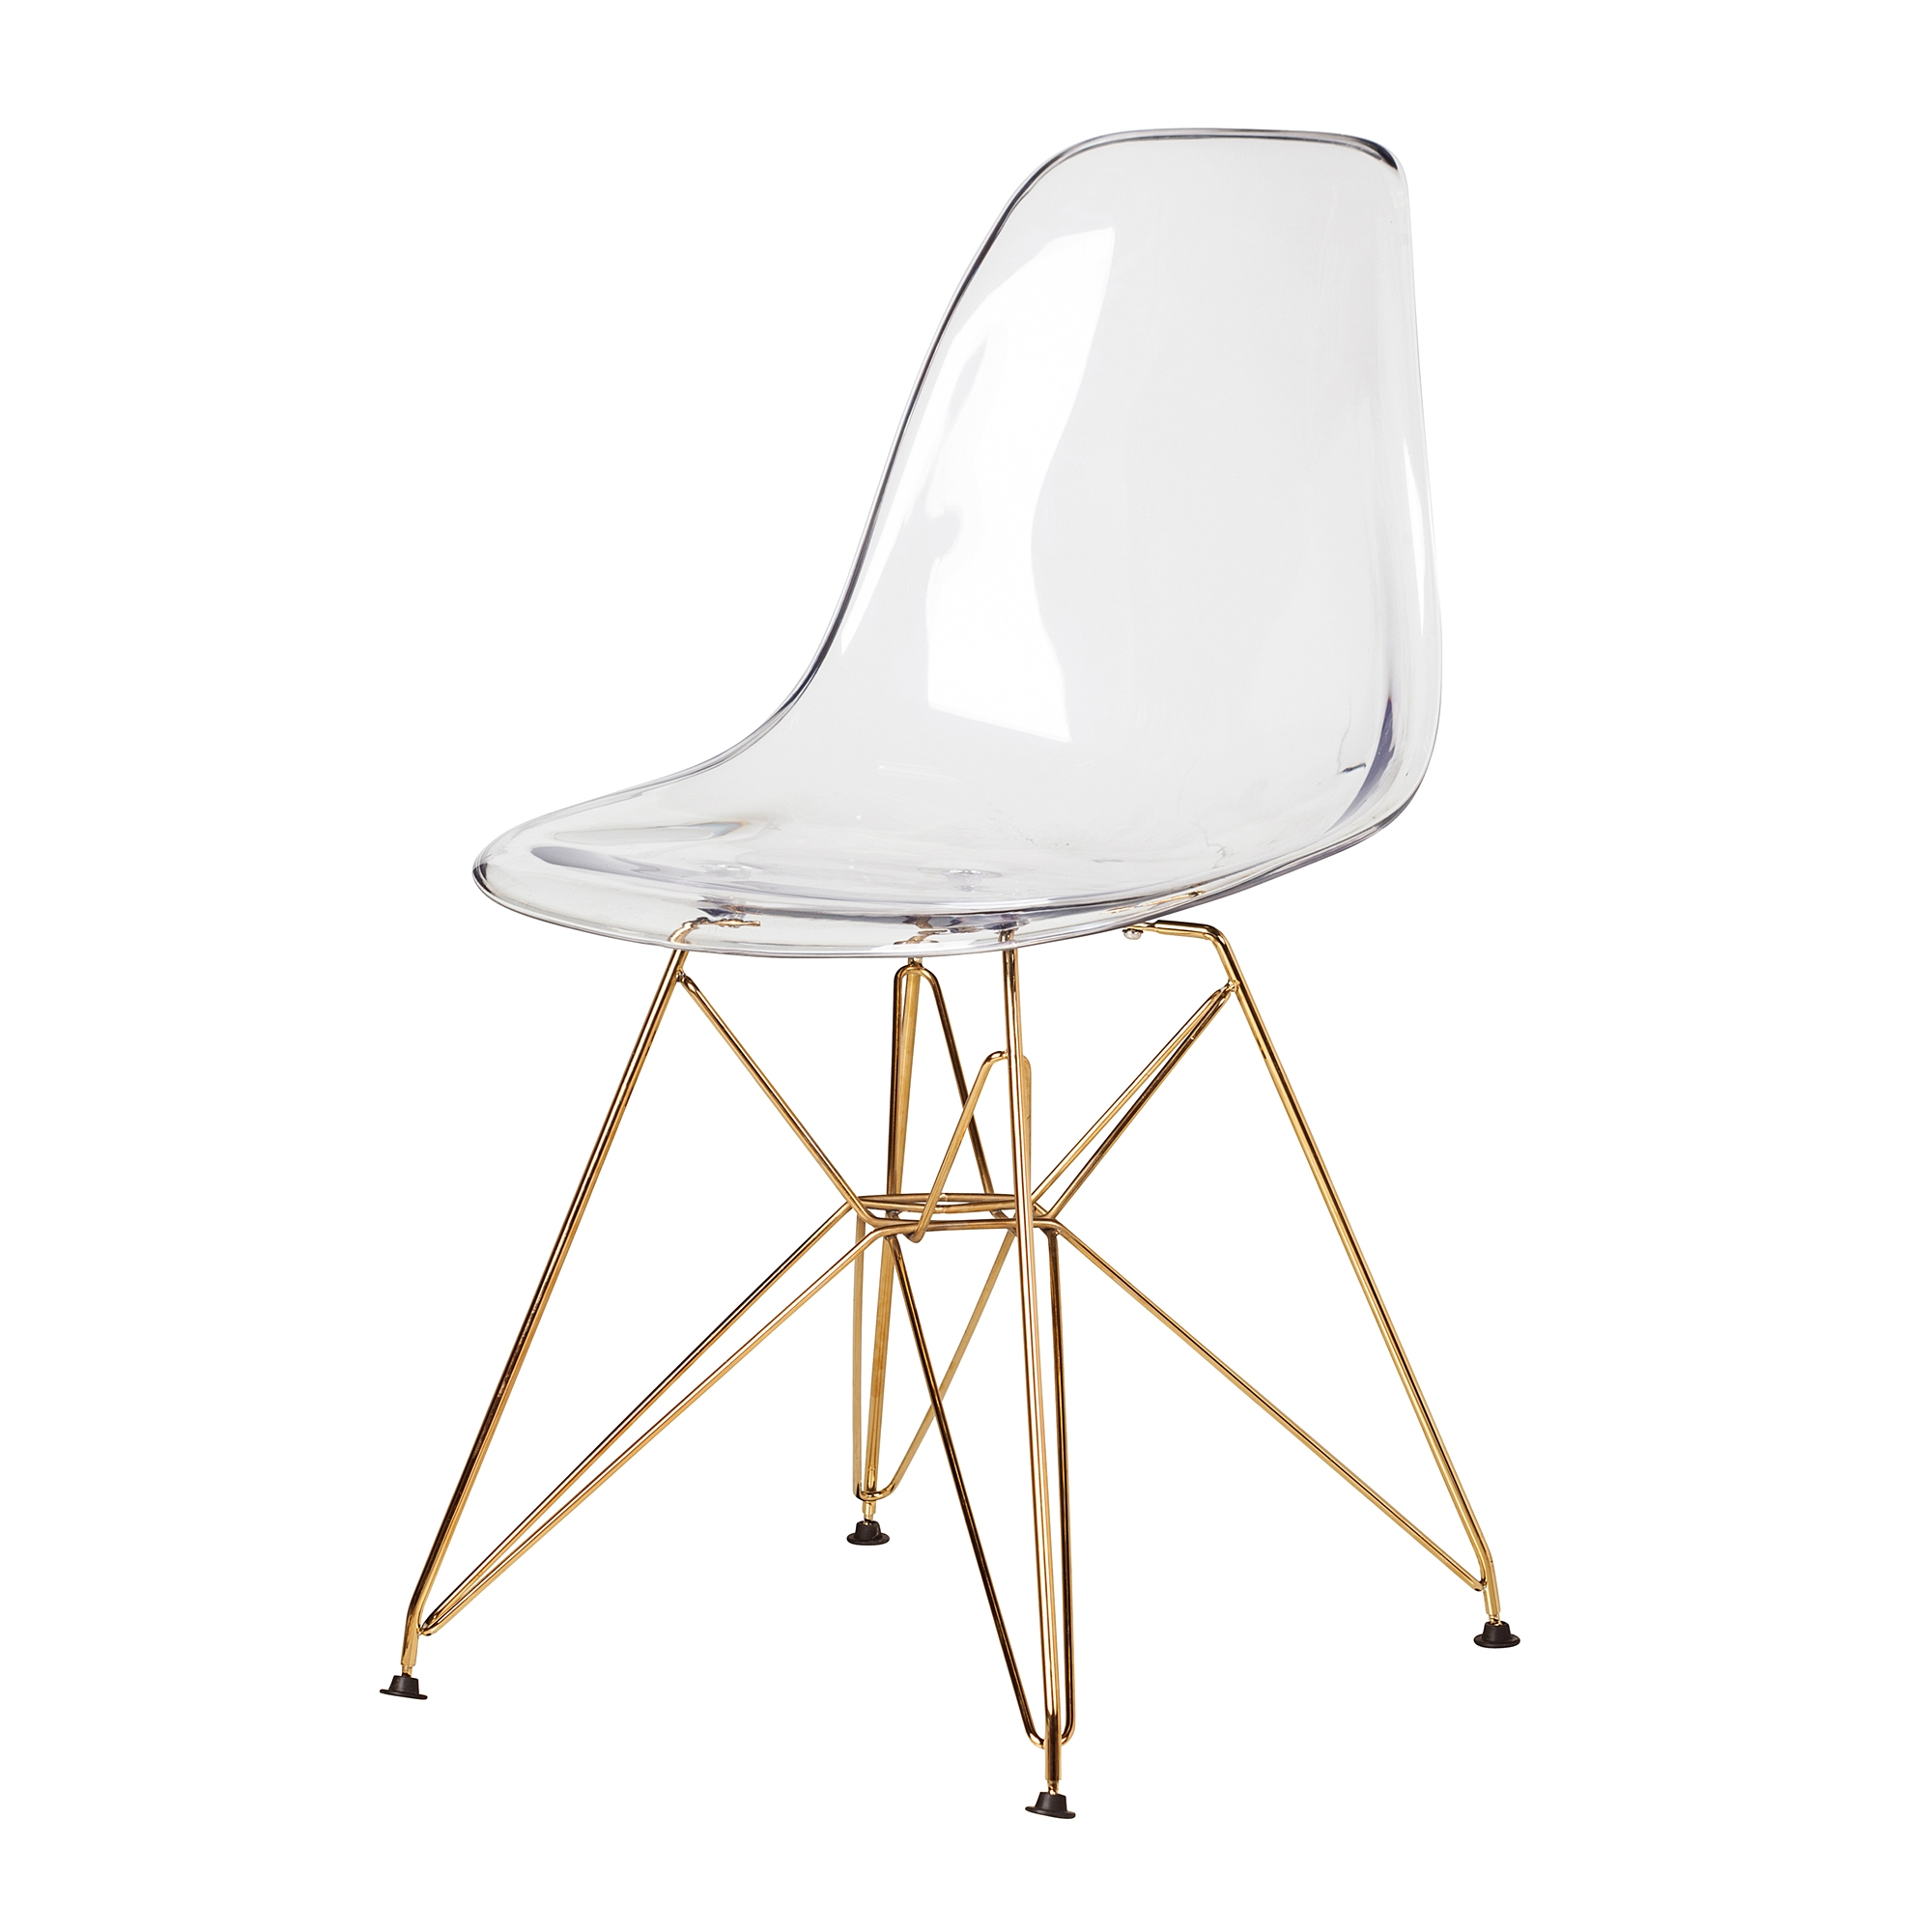 Eames Eiffel Molded Plastic Dsr Style Clear Side Chair With Gold Legs